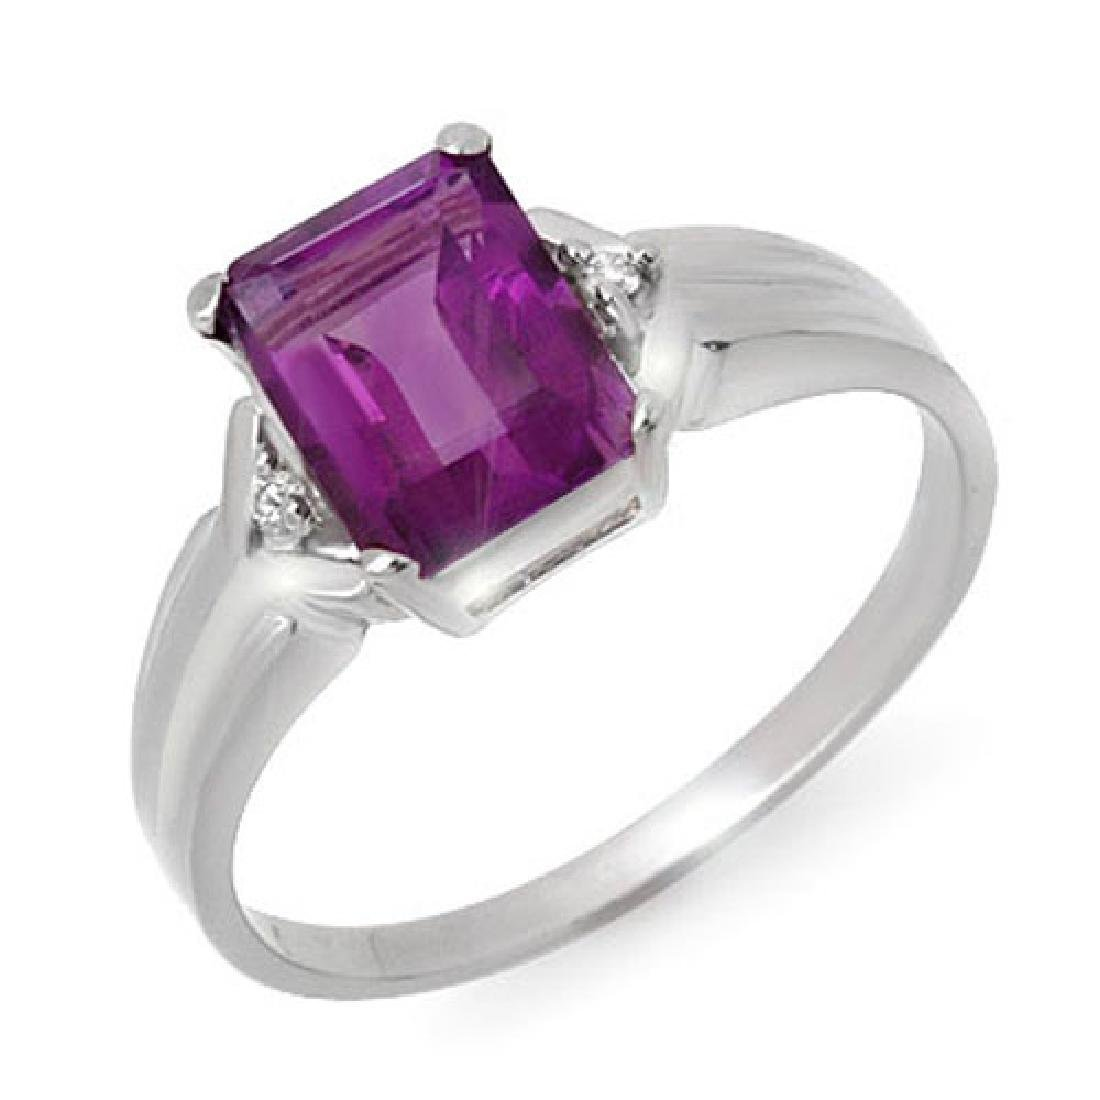 1.47 CTW Amethyst & Diamond Ring 10K White Gold